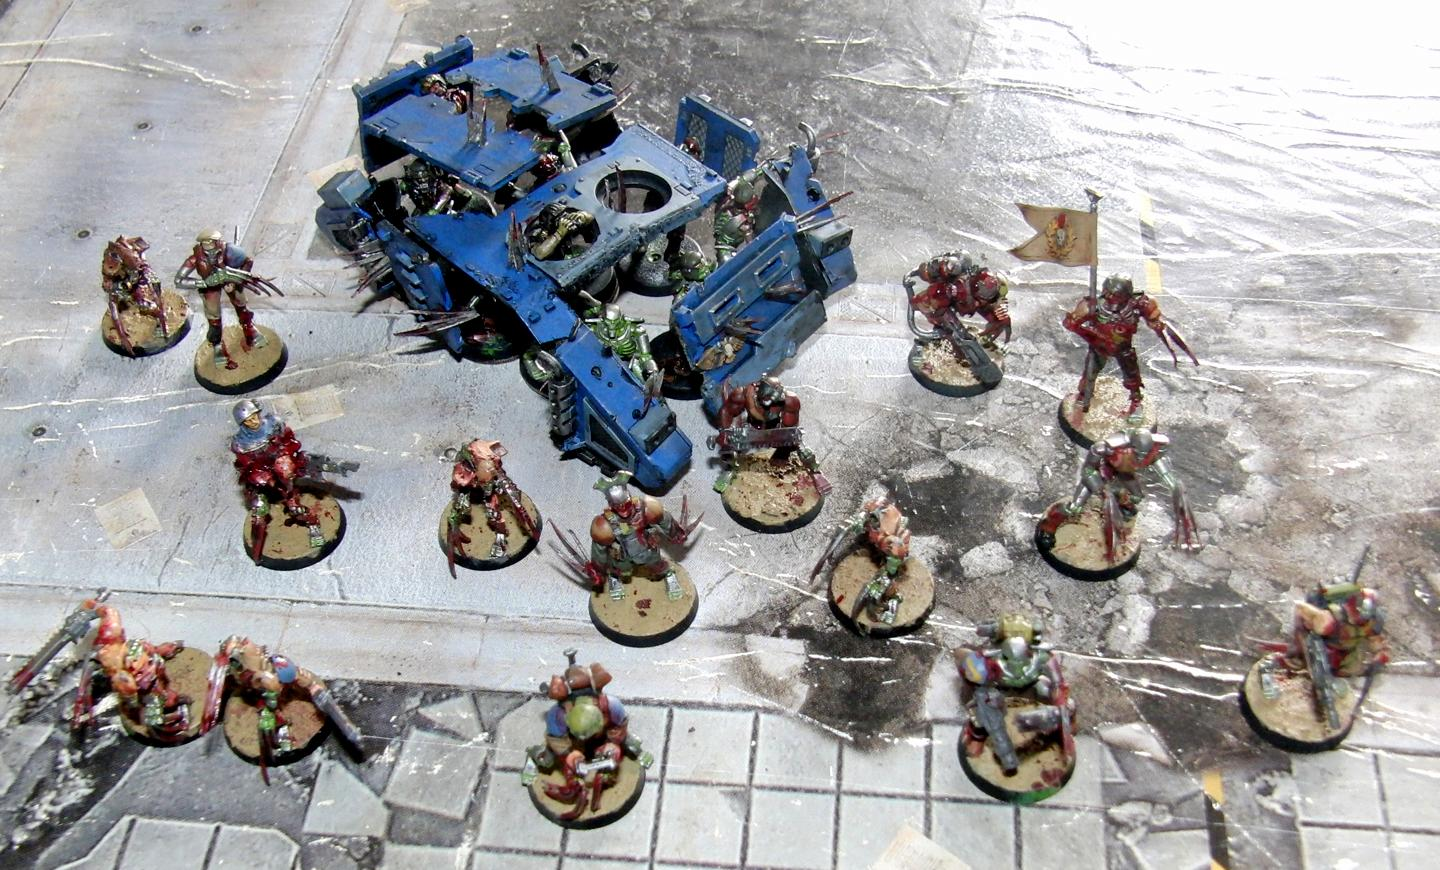 Blanche, Blood, Conversion, Flayed, Flesh, Imperial Guard, Necrons, Warhammer 40,000